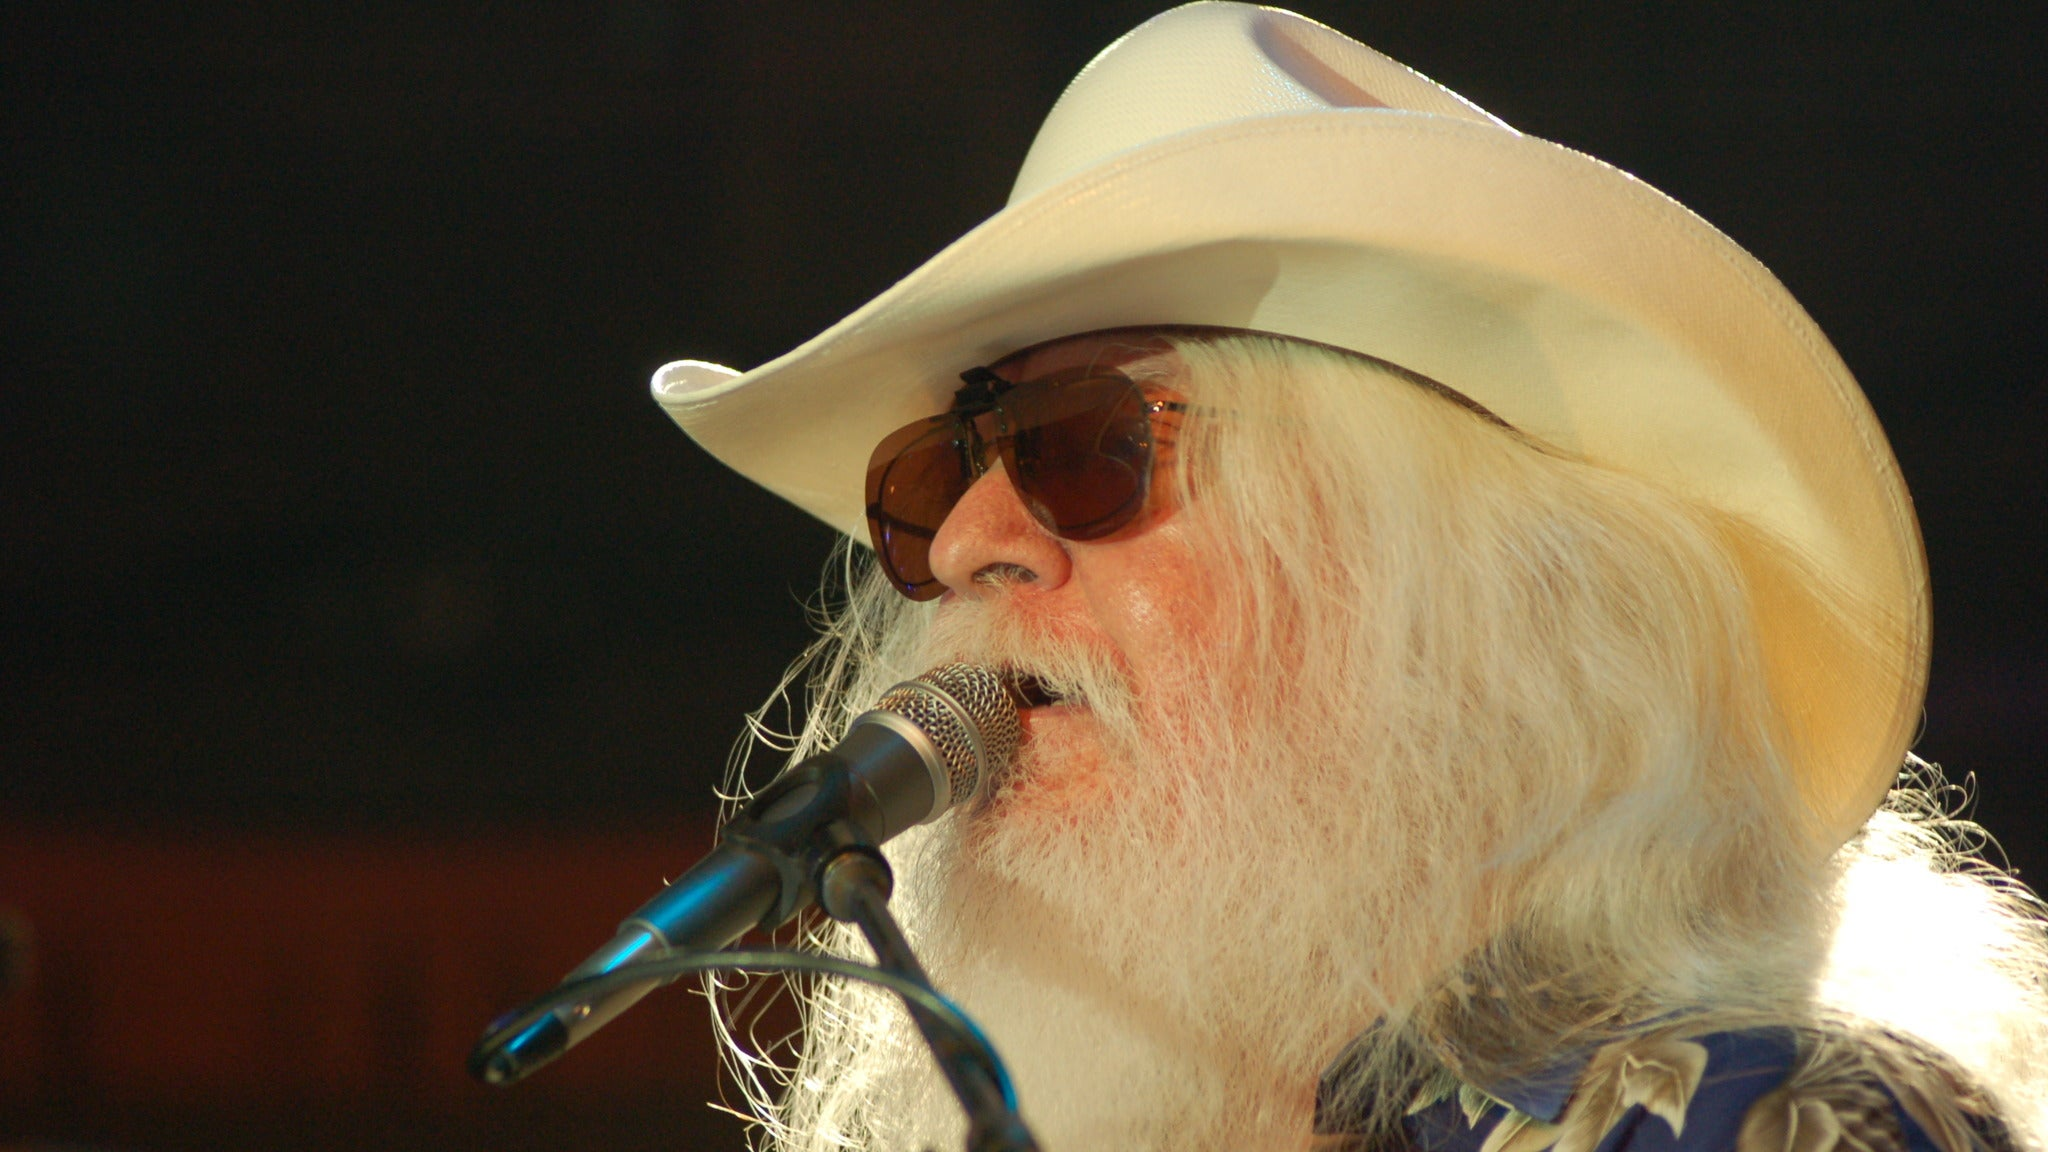 Leon Russell at Amaturo Theater at Broward Center - Ft Lauderdale, FL 33312